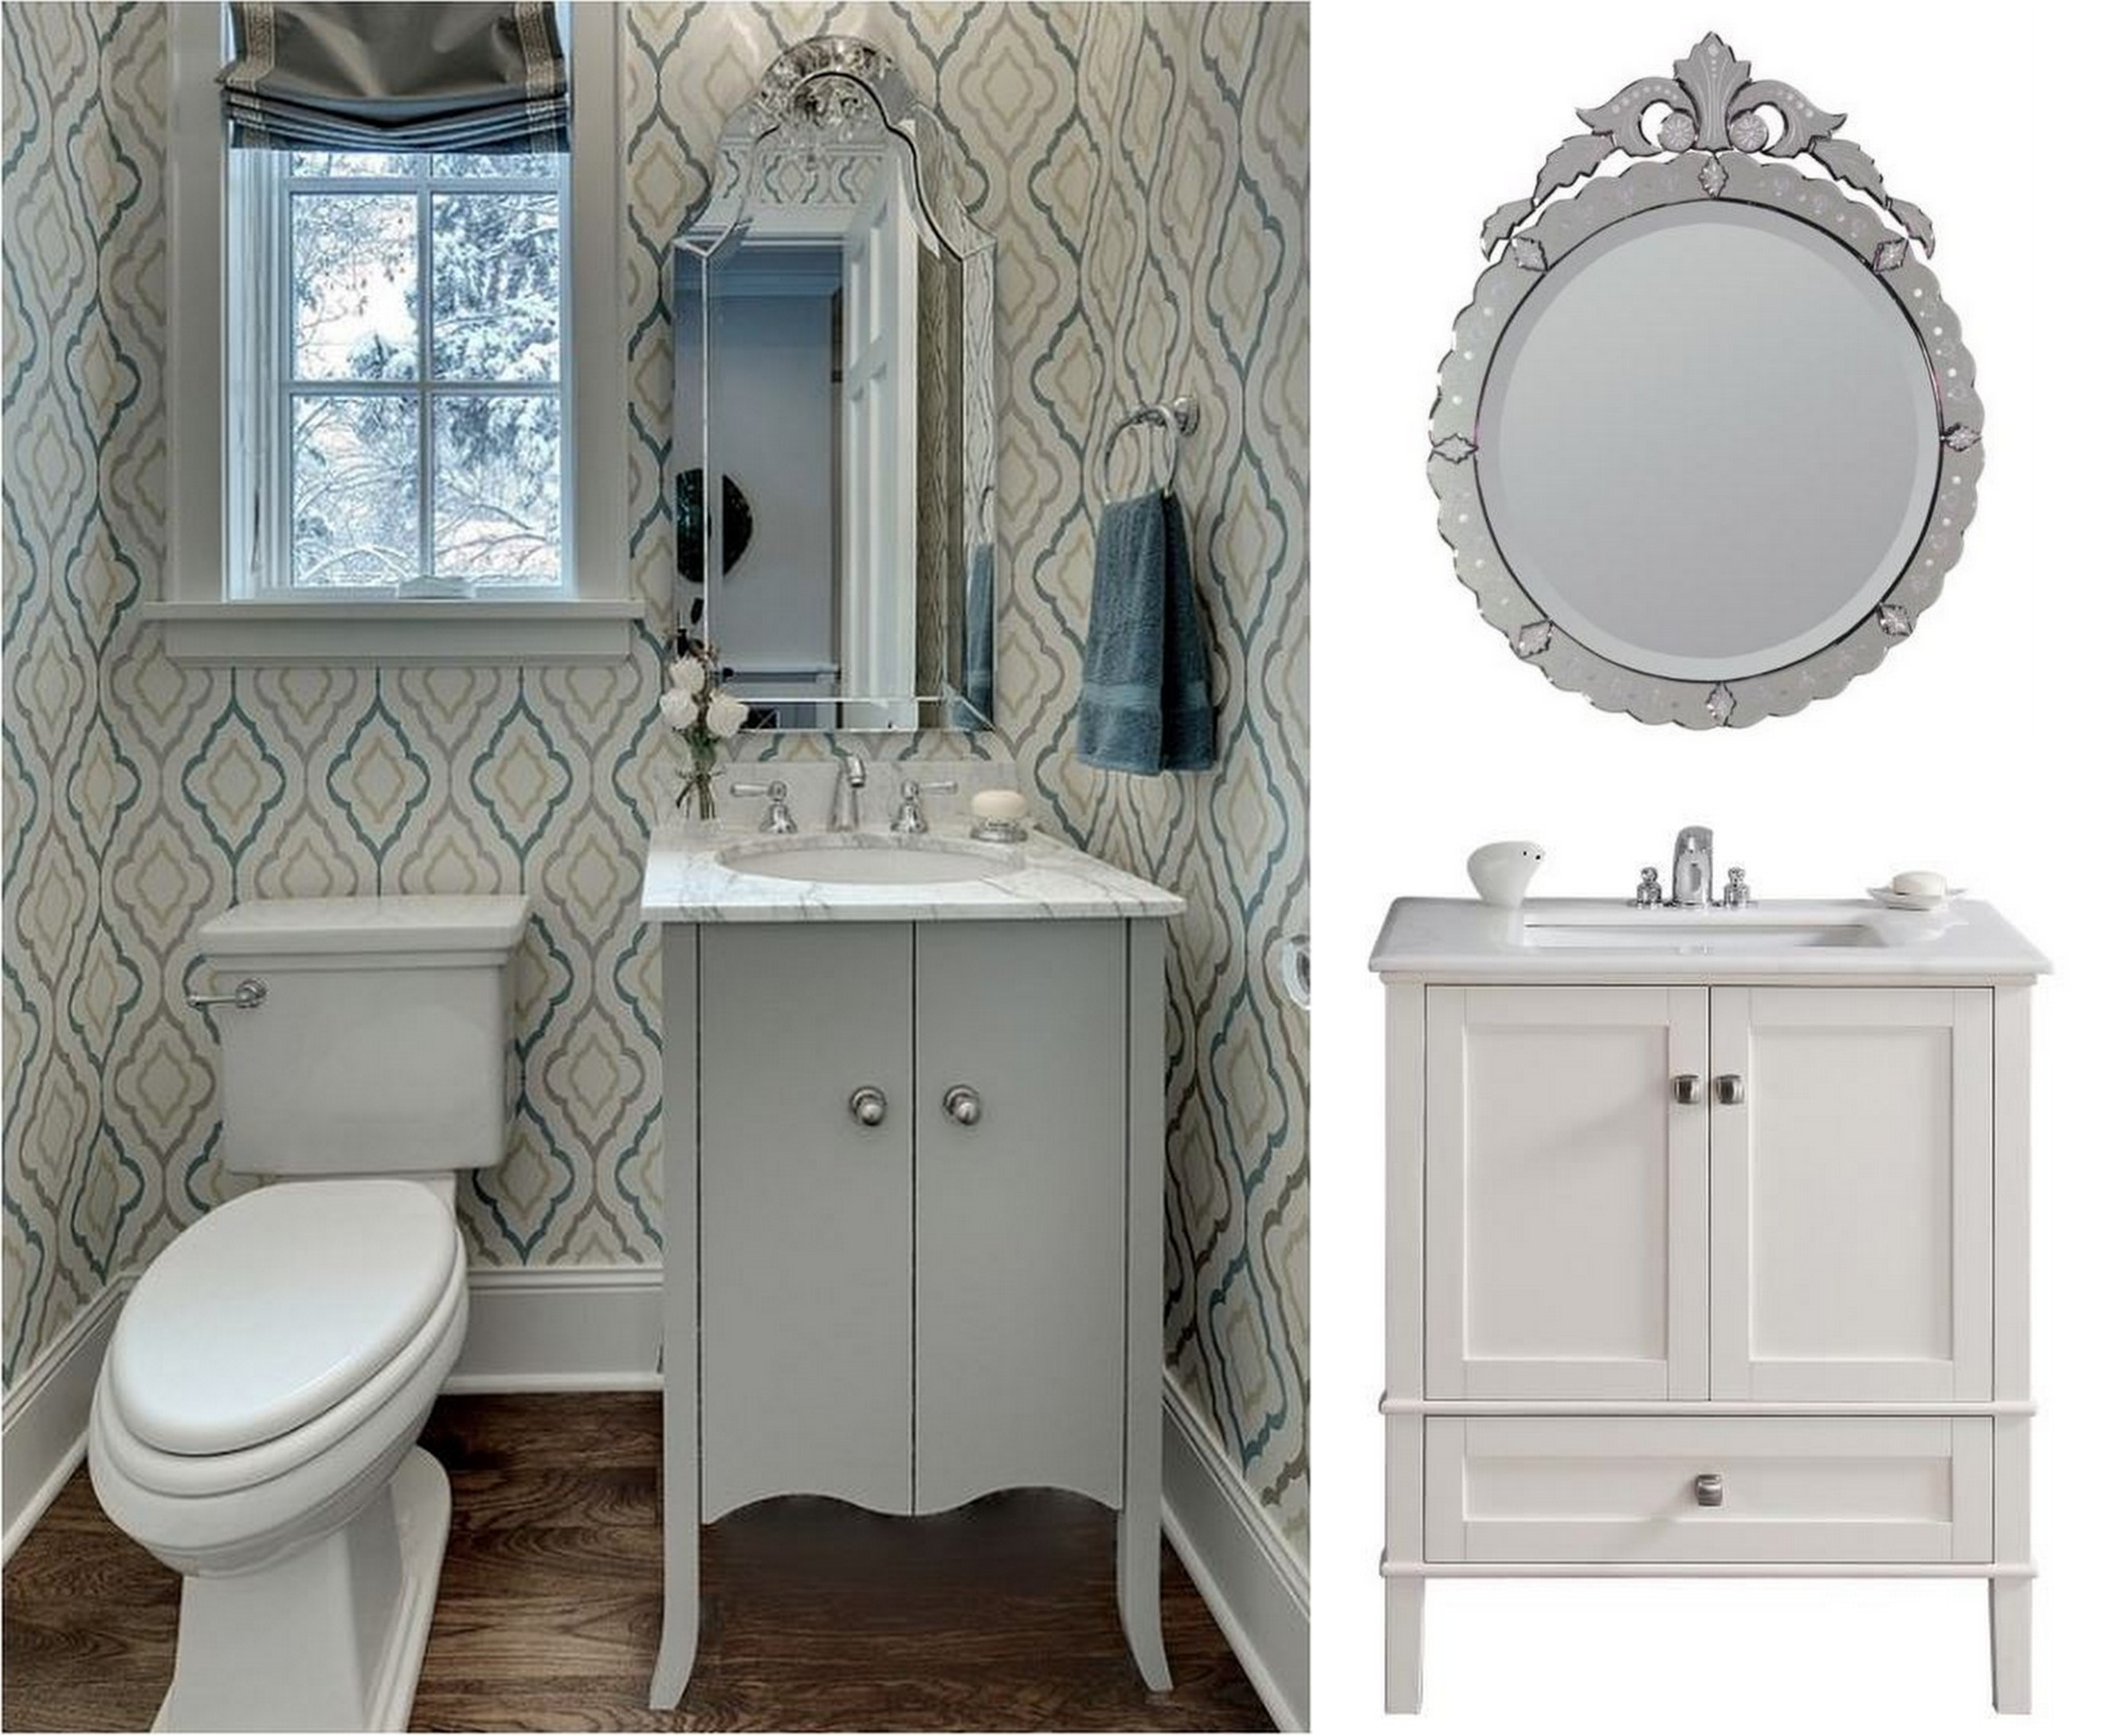 Importance of powder room vanities for Powder room vanities for small spaces